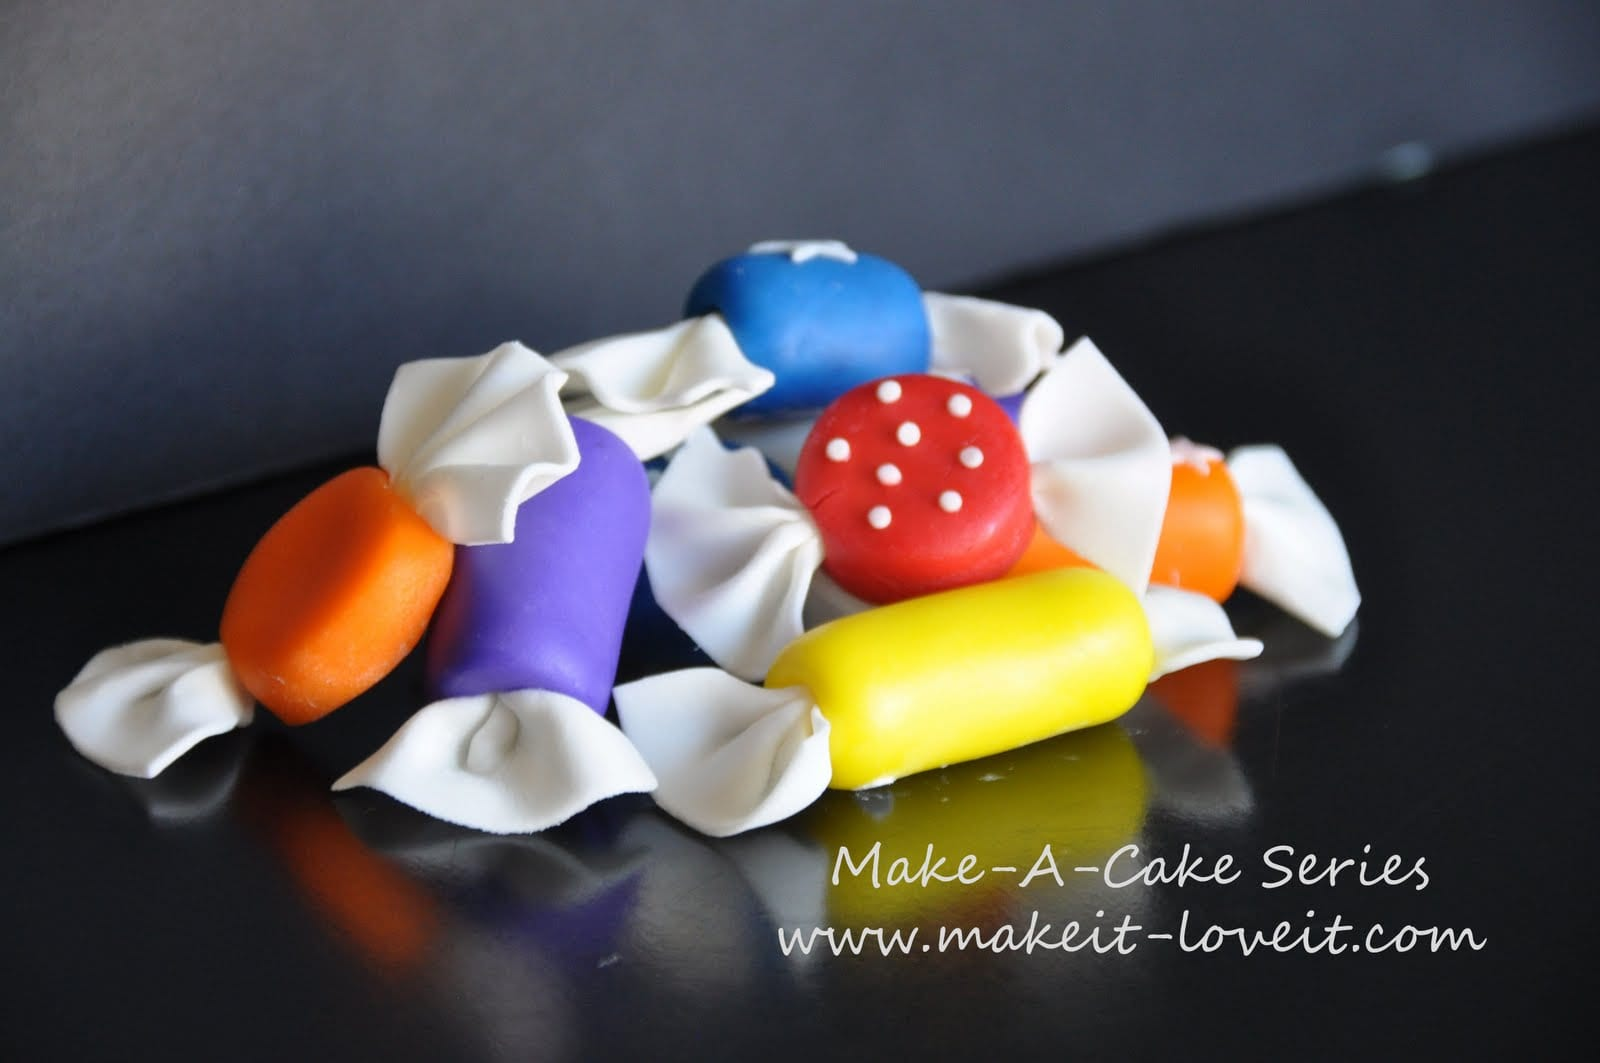 Make-a-Cake Series: Fondant Candy